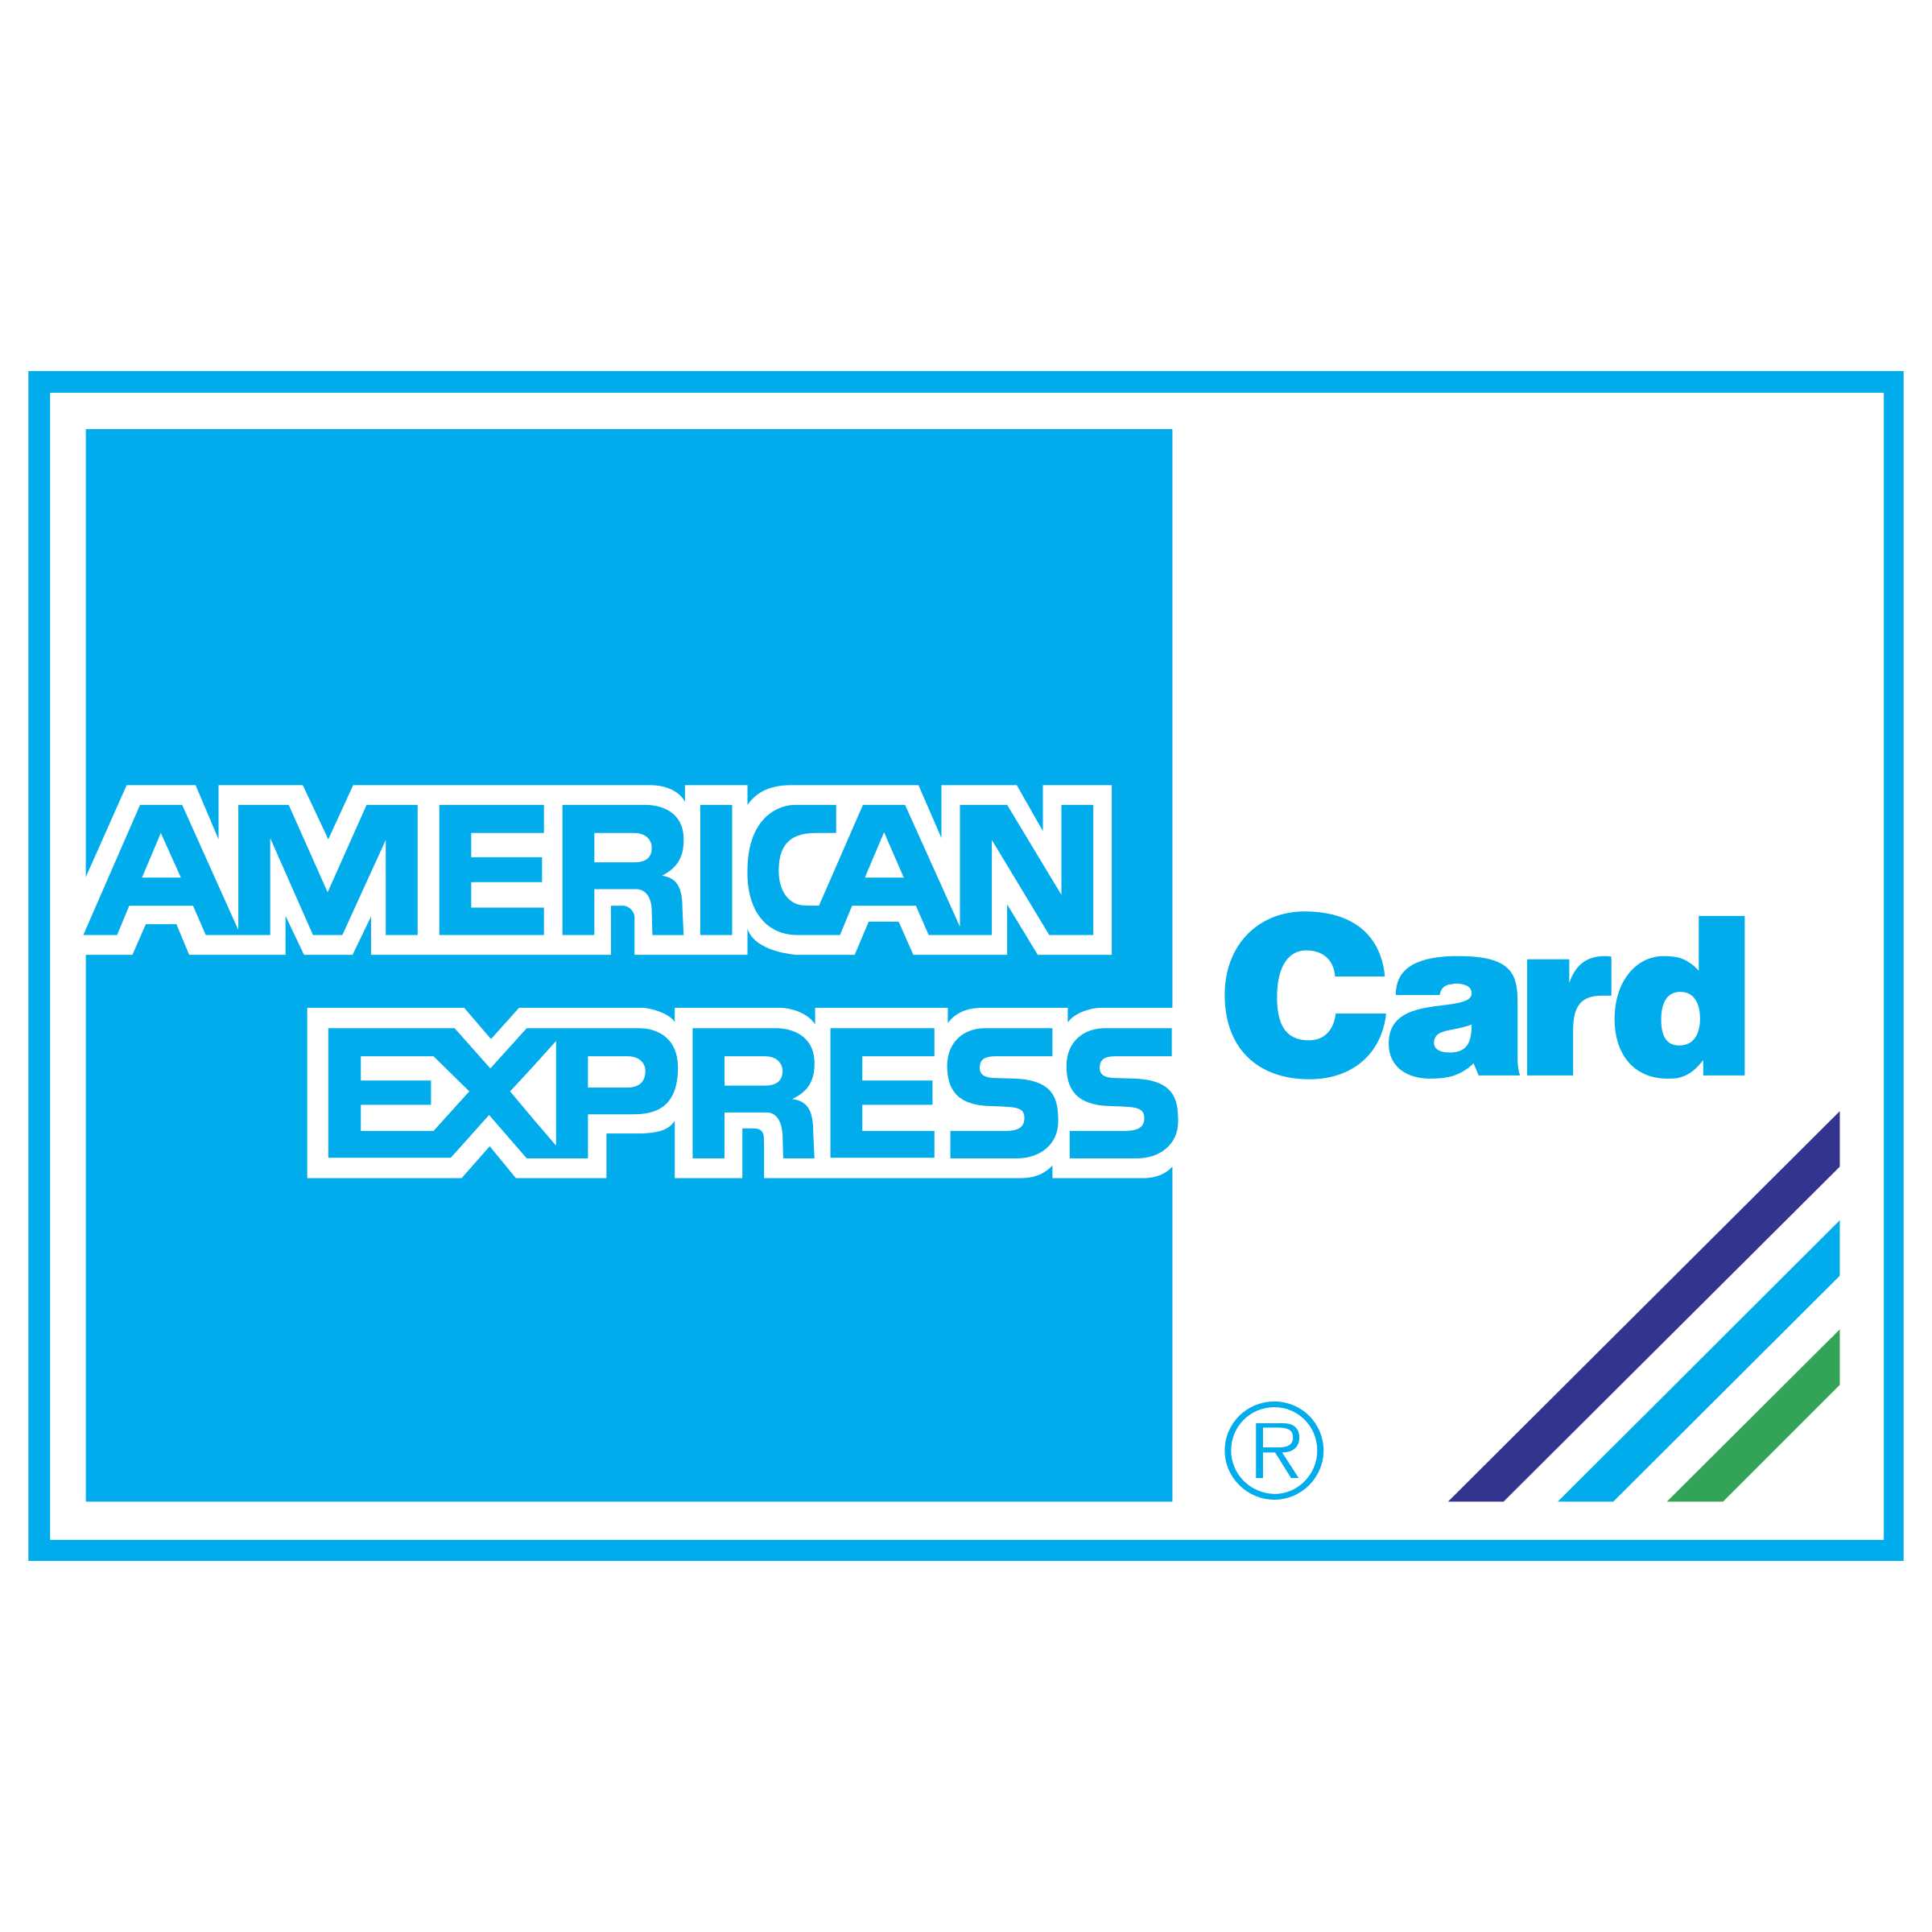 american express card logo png transparent svg vector freebie supply rh freebiesupply com American Express Credit Card Logo american express new logo vector